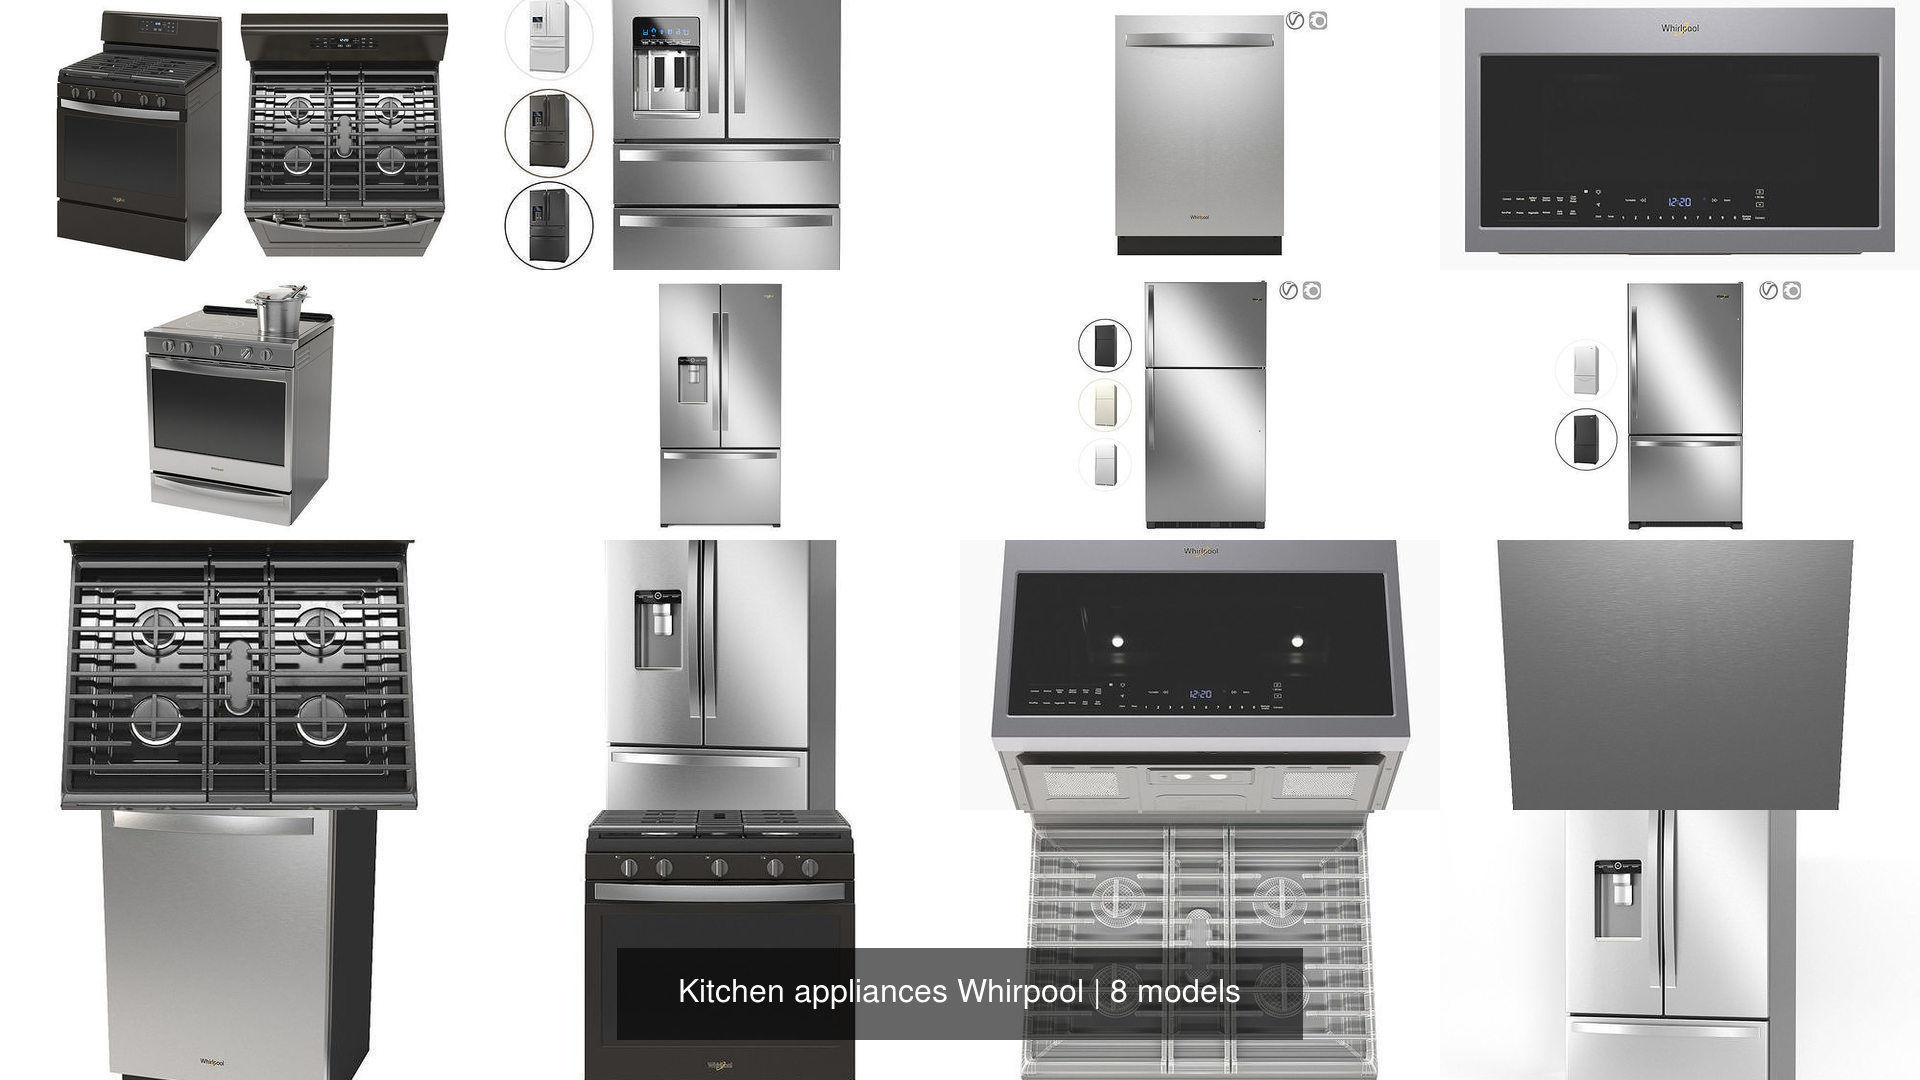 Kitchen appliances Whirpool